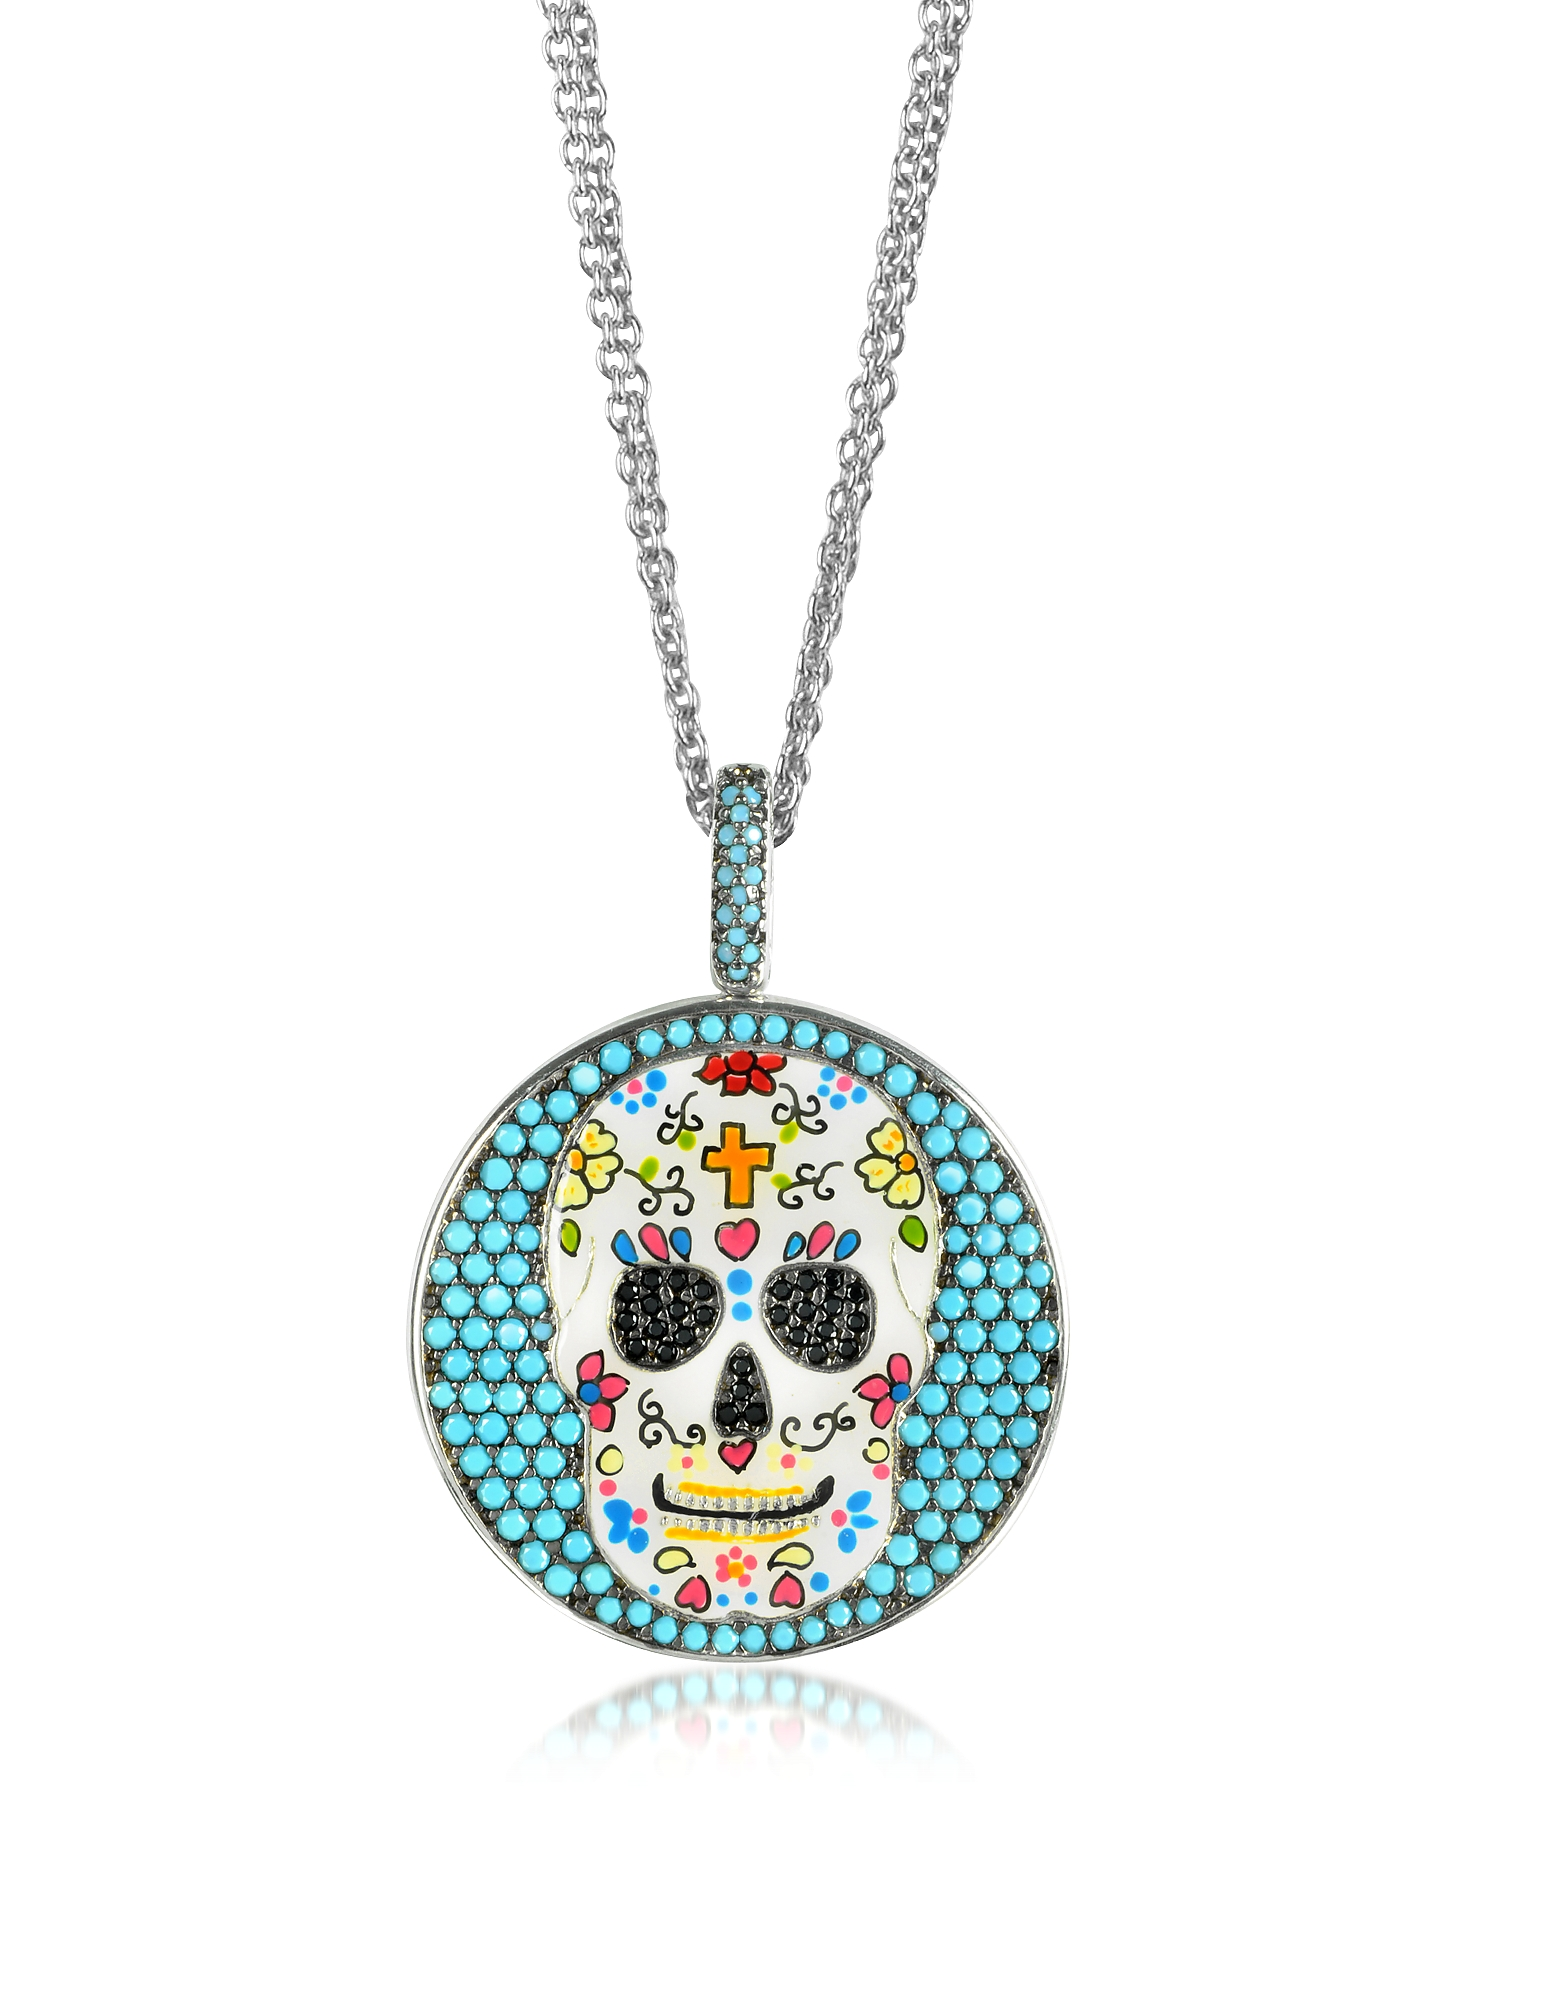 Azhar Necklaces, Calavera Skull Charm Rhodium Plated Sterling Silver Pendant Necklace